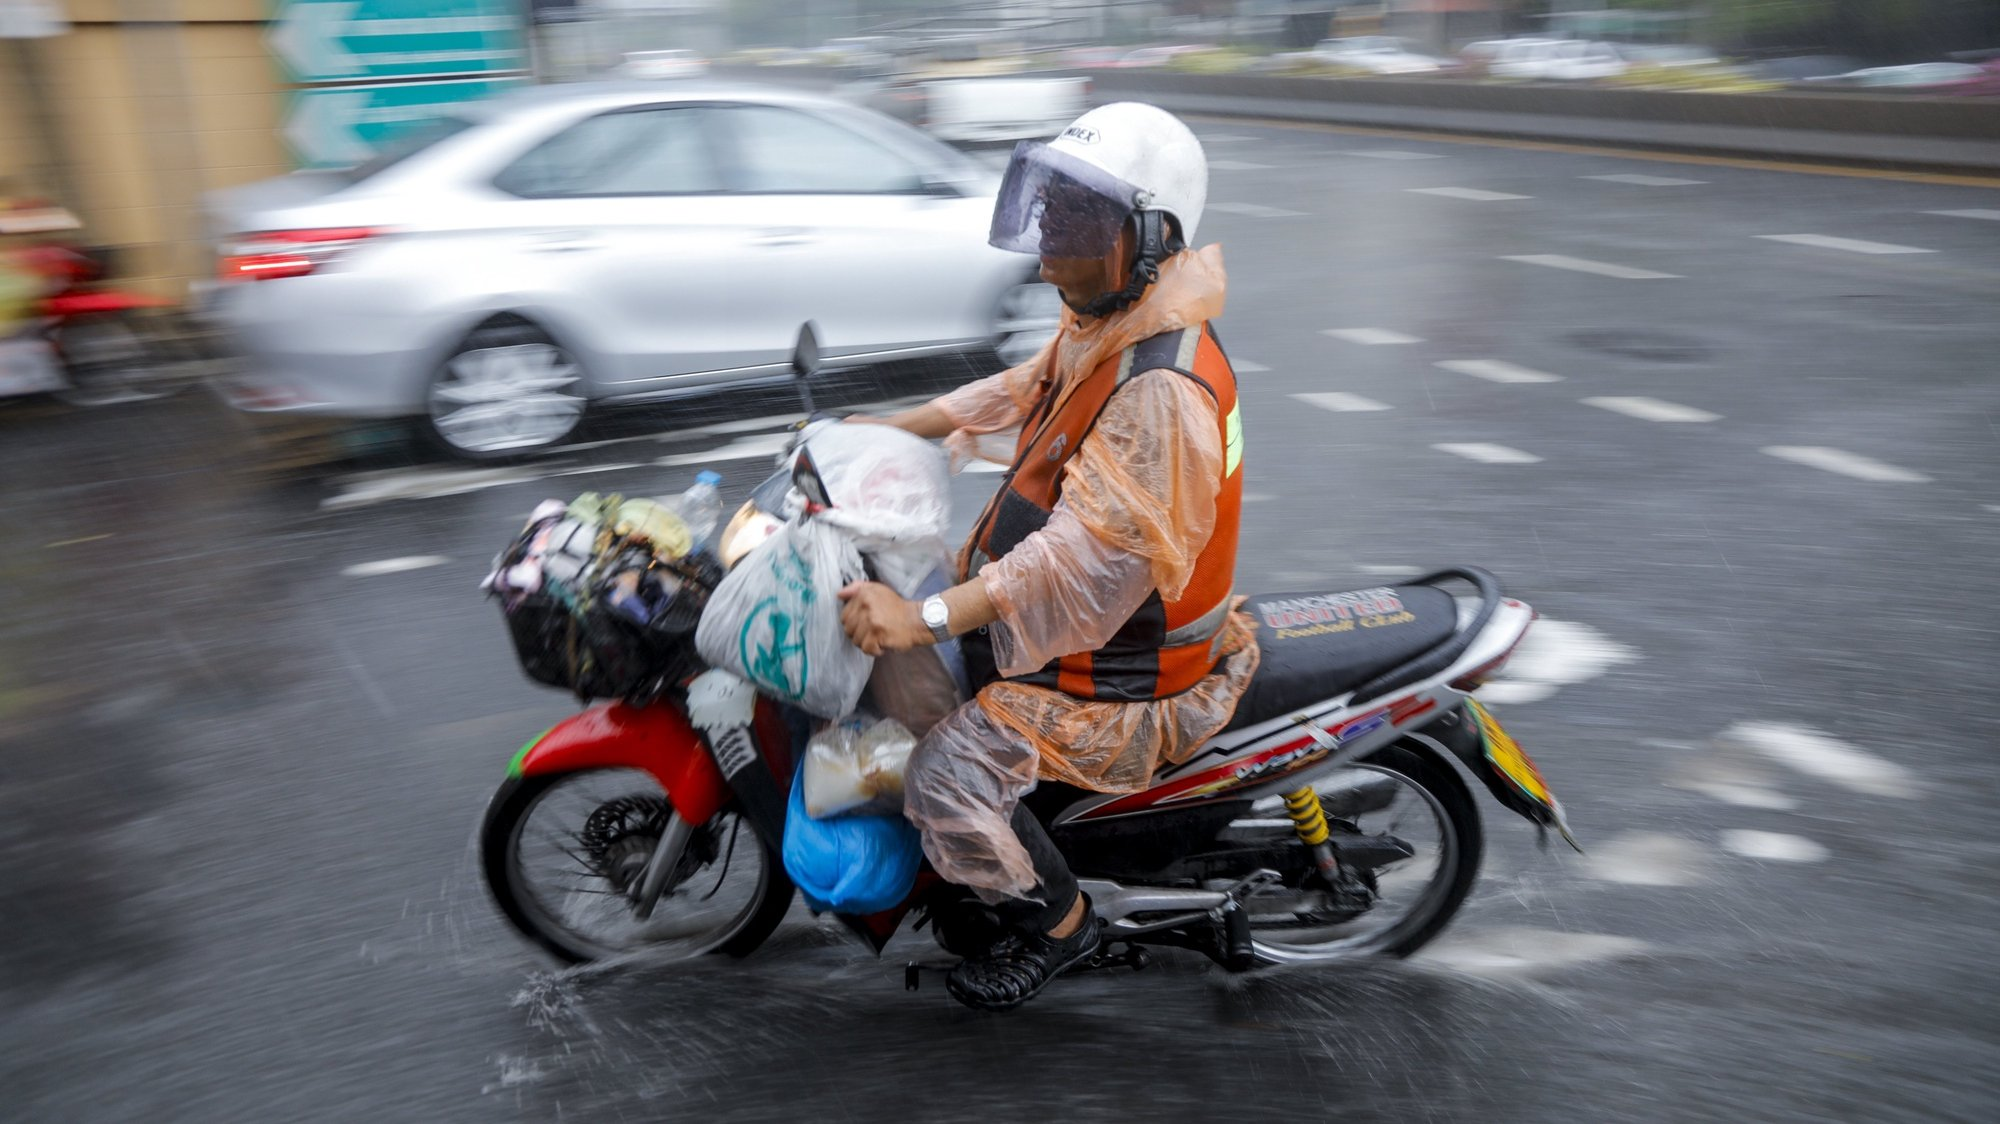 epaselect epa05969493 A motorcycle taxi drives through a puddle of rain water during heavy summer storm in Bangkok, Thailand, 17 May 2017. Thailand's Meteorological Department warned of heavy to very heavy rain in upper Thailand as well as a strong wind wave in the Andaman Sea.  EPA/DIEGO AZUBEL